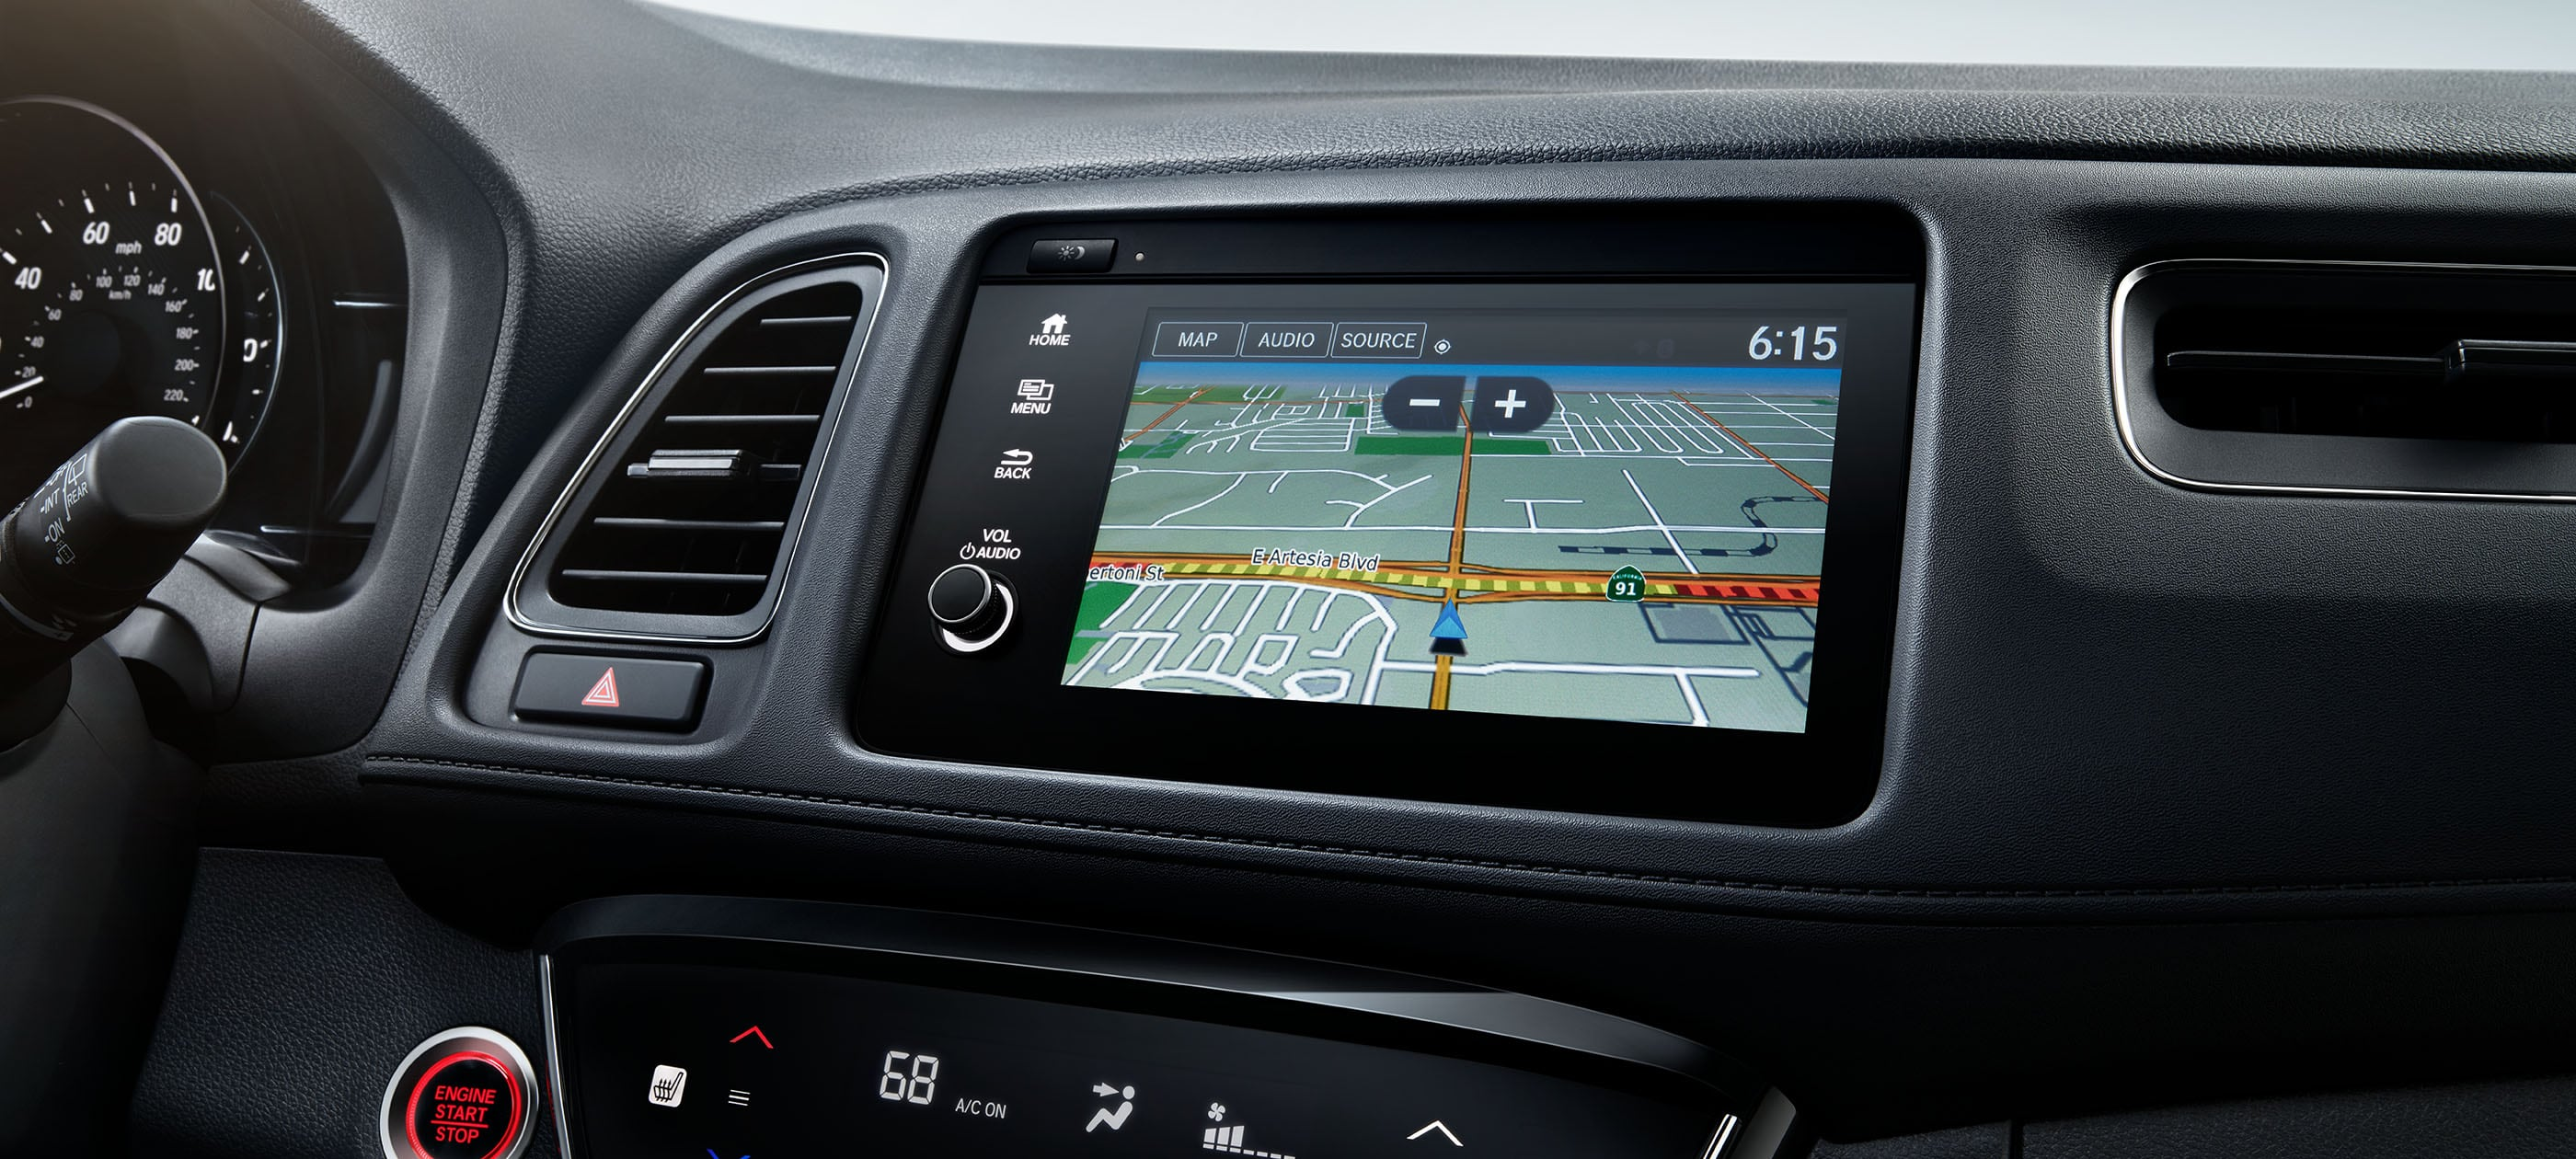 Honda Satellite-Linked Navigation System™ detail on Display Audio touch-screen in 2020 Honda HR-V Touring with Black Leather.